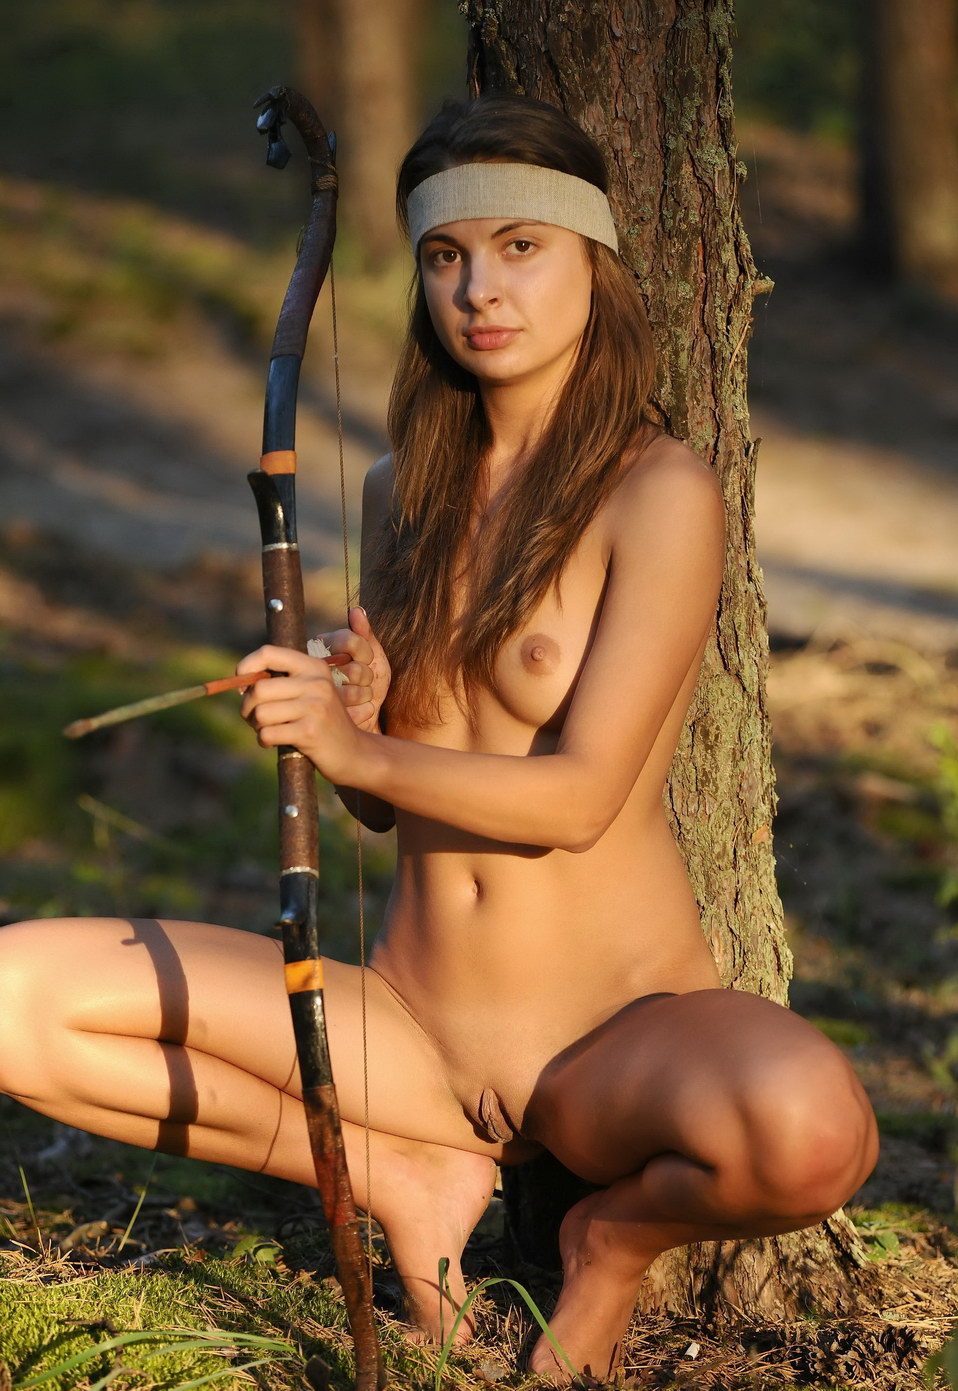 Sexy nude girls and archery